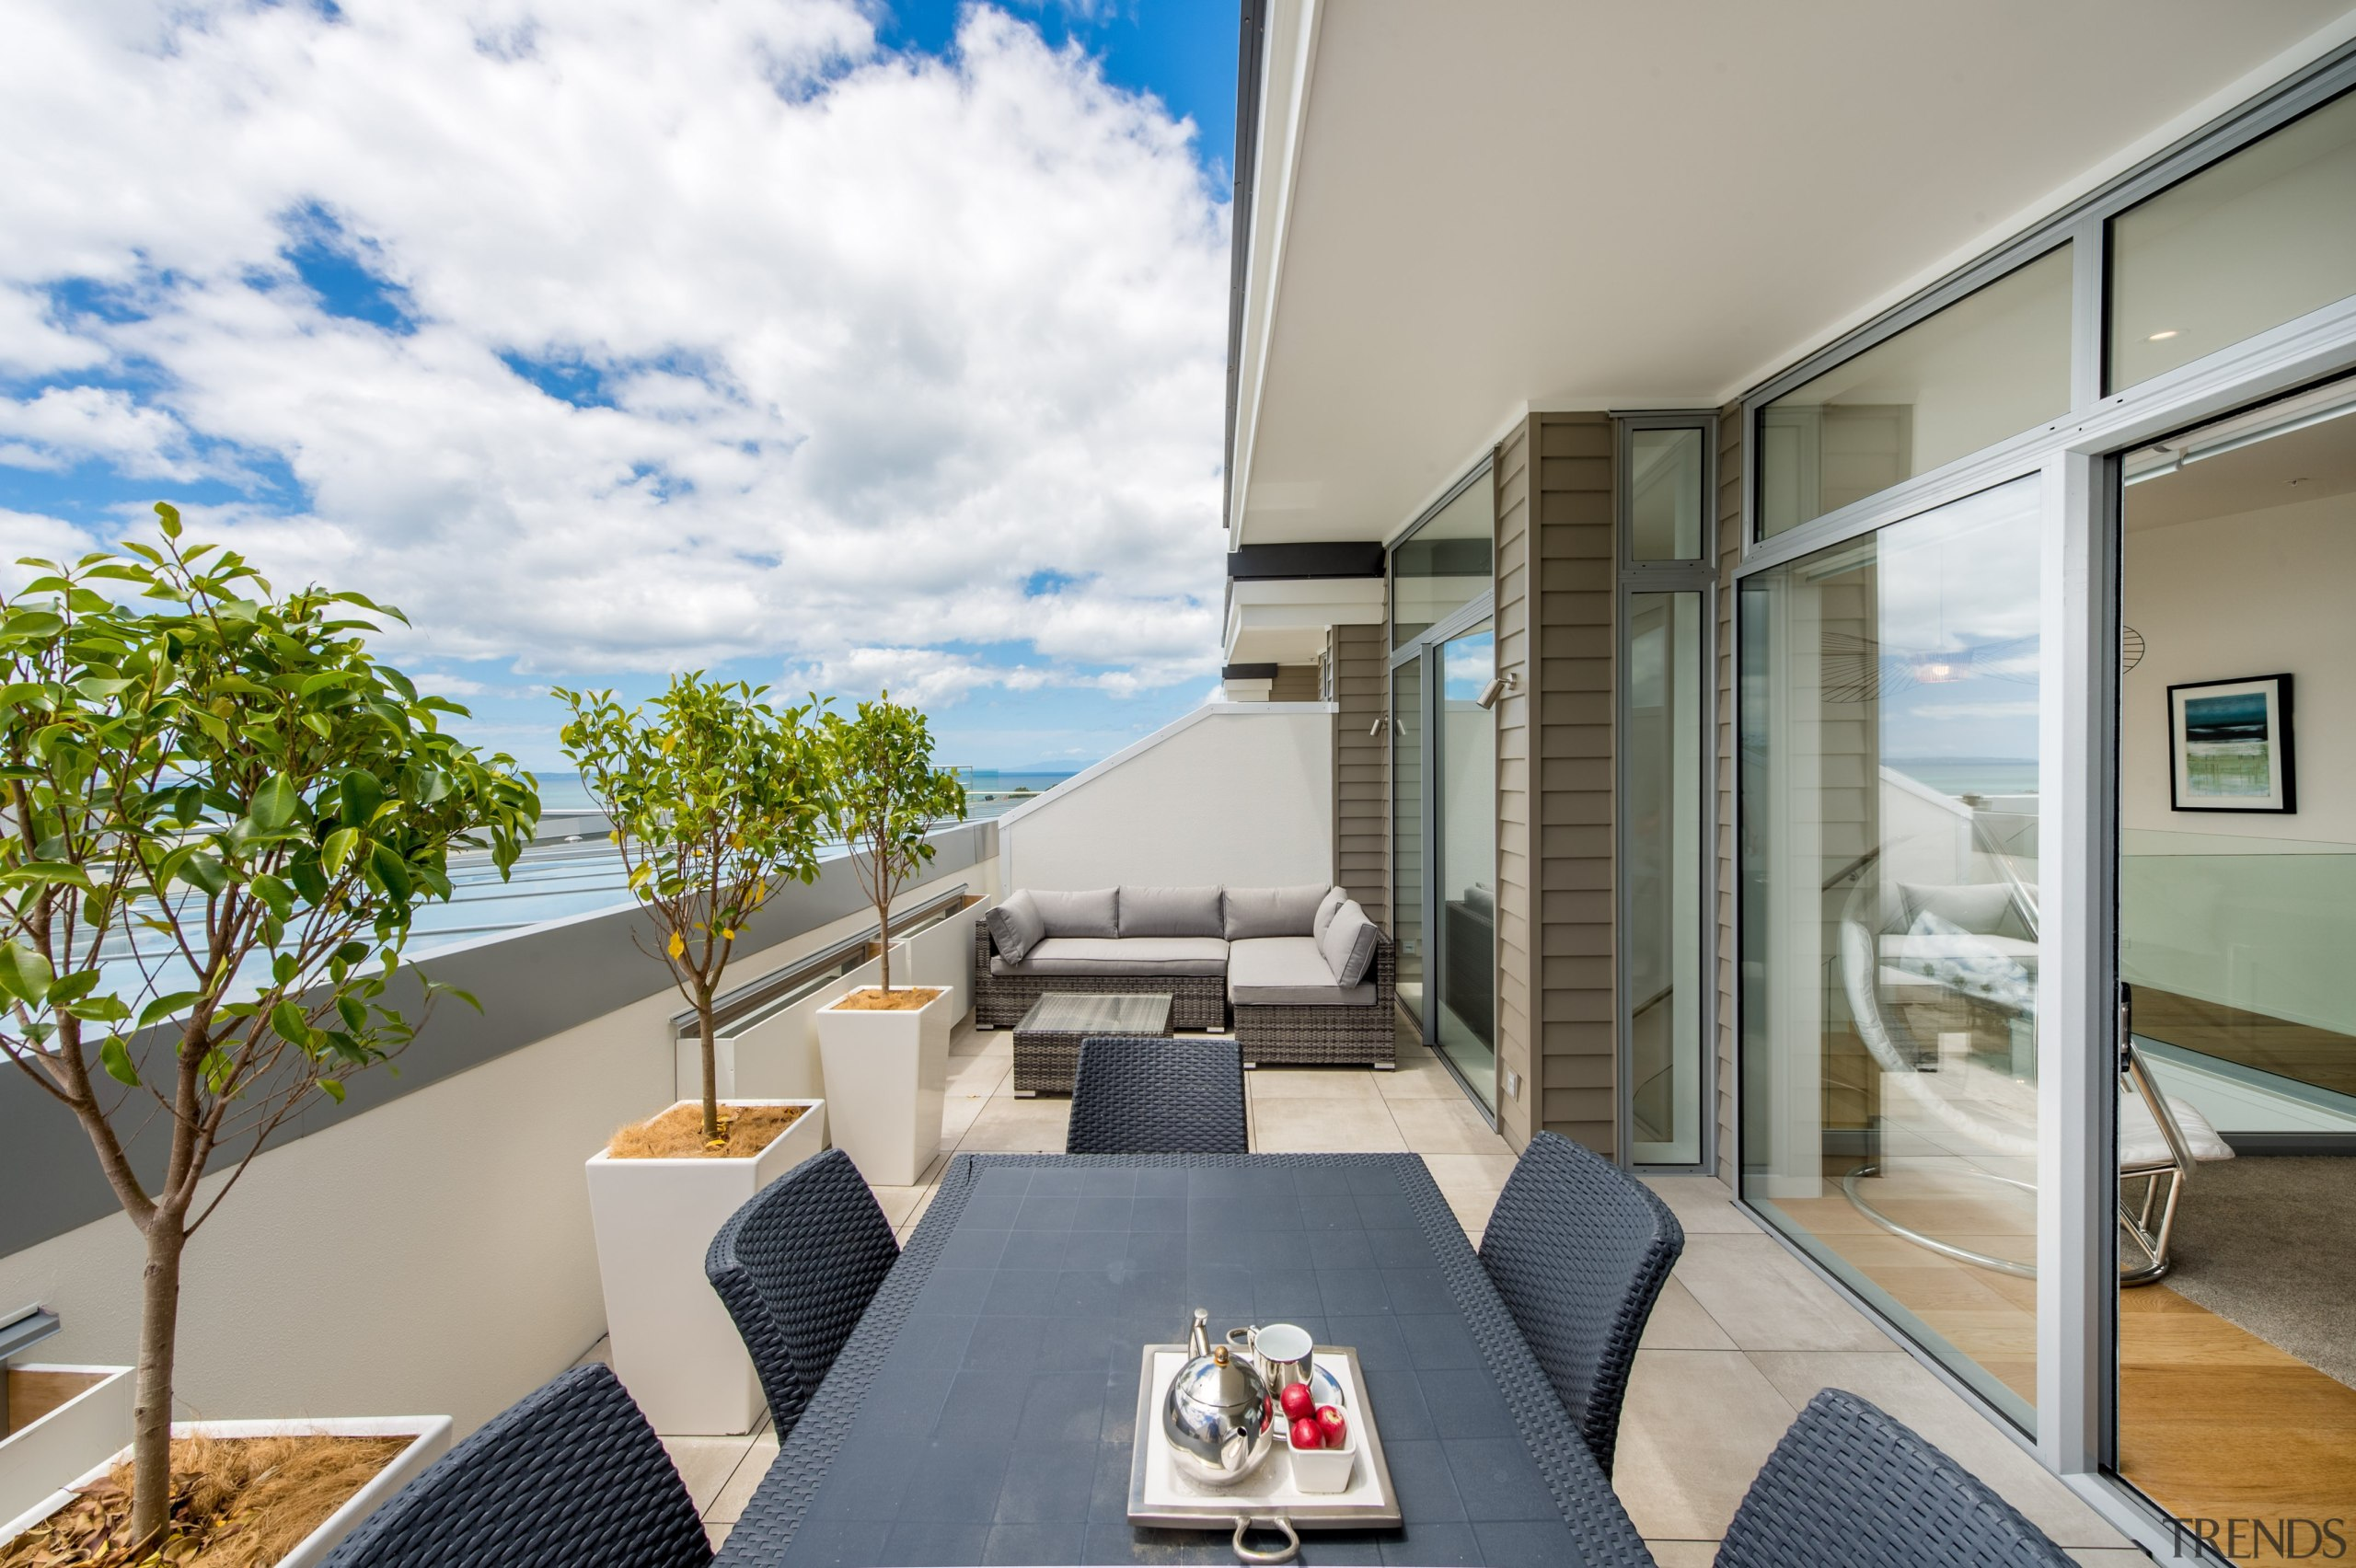 Deck with seaview - Deck with seaview - apartment, architecture, balcony, condominium, house, interior design, penthouse apartment, real estate, gray